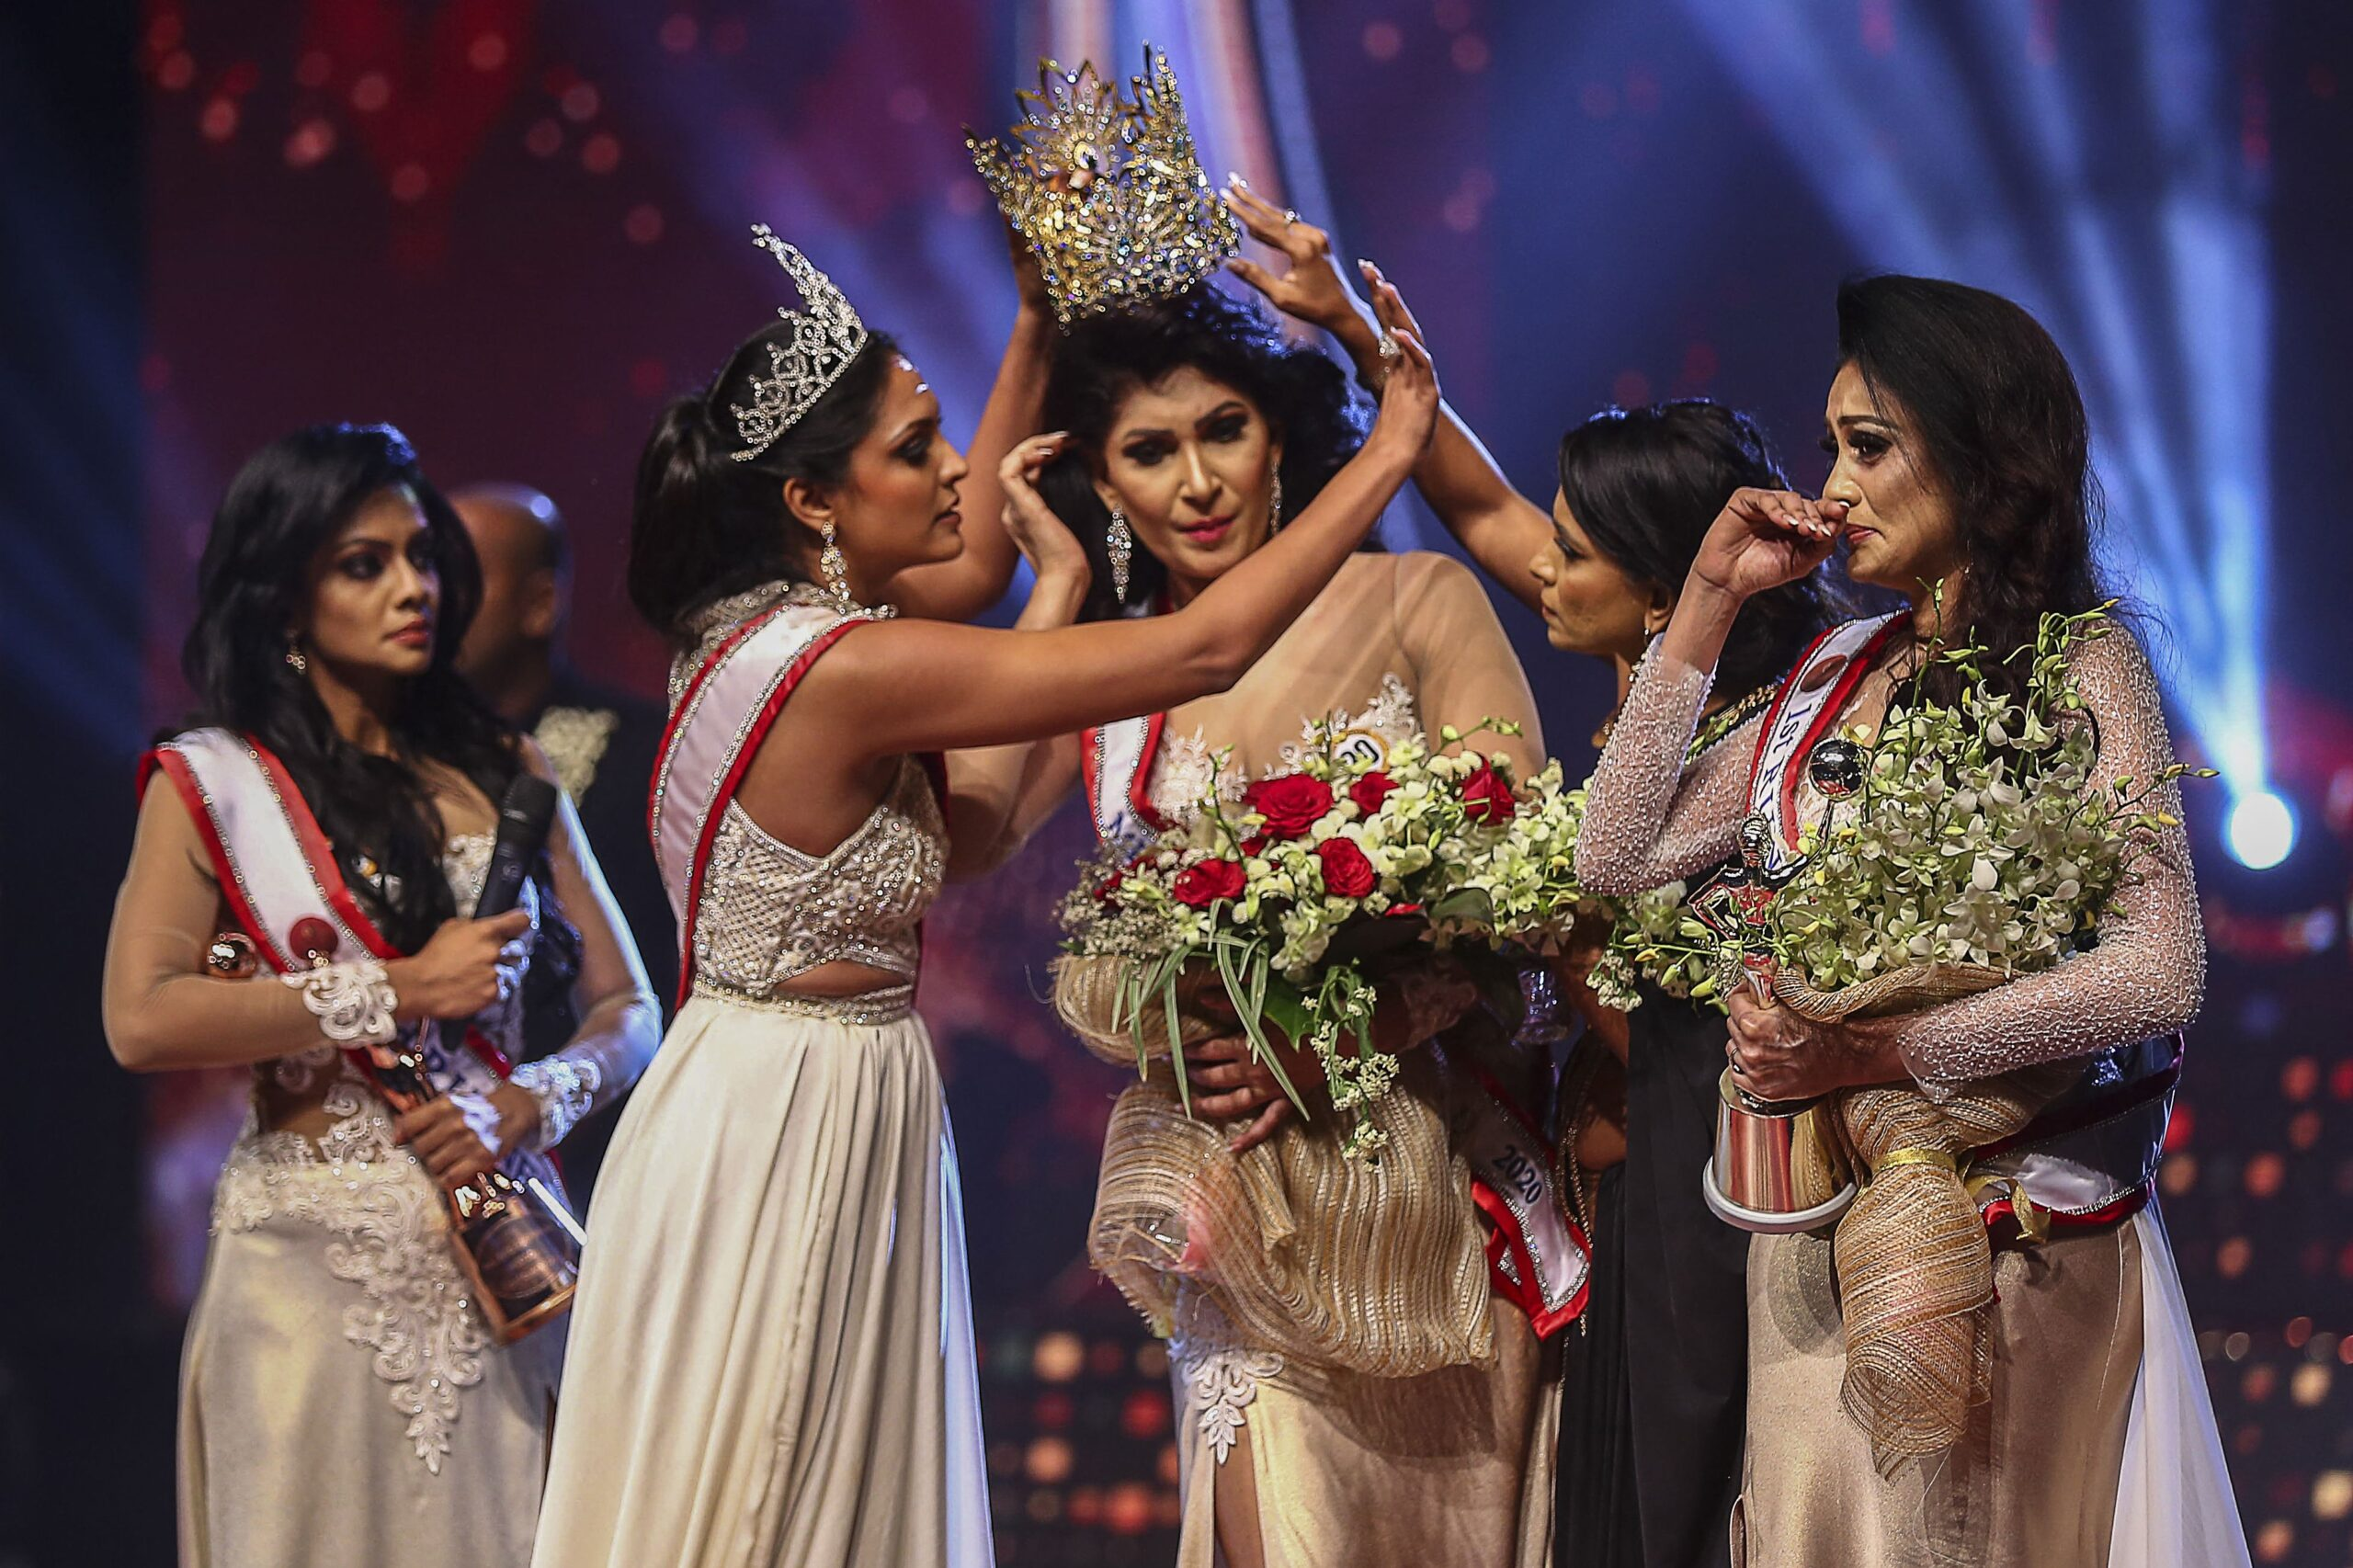 Top 10 National Pageant Systems of 2016 | Pageant systems